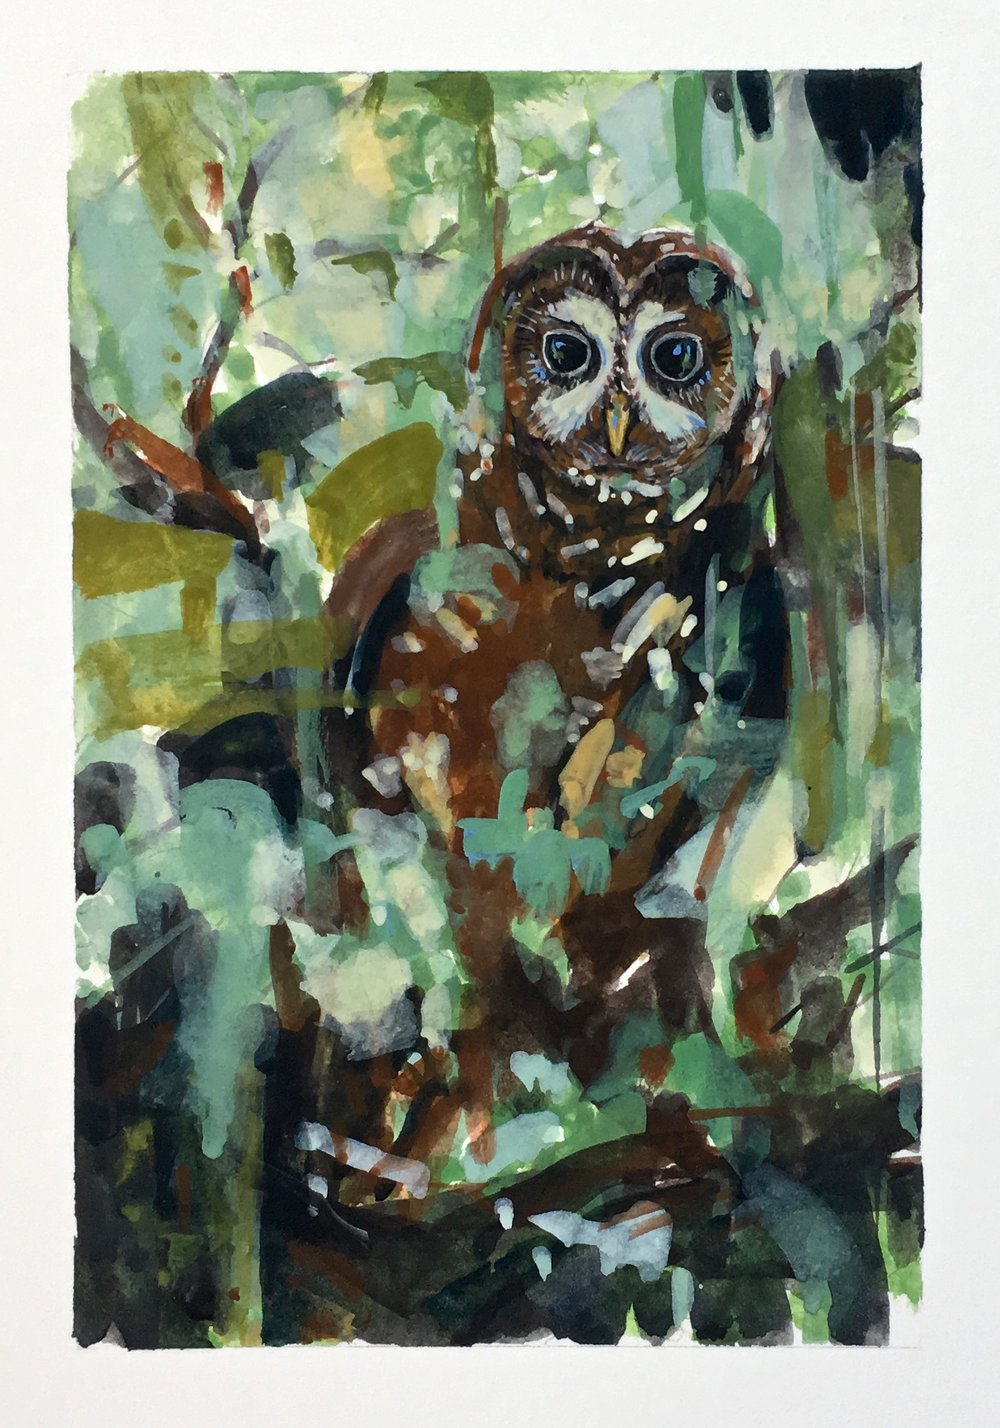 California Spotted Owl are nocturnal, sleeping during the day and hunting at night. They perch and pounce from their foraging site; waiting patiently for their prey to saunter by before pouncing.